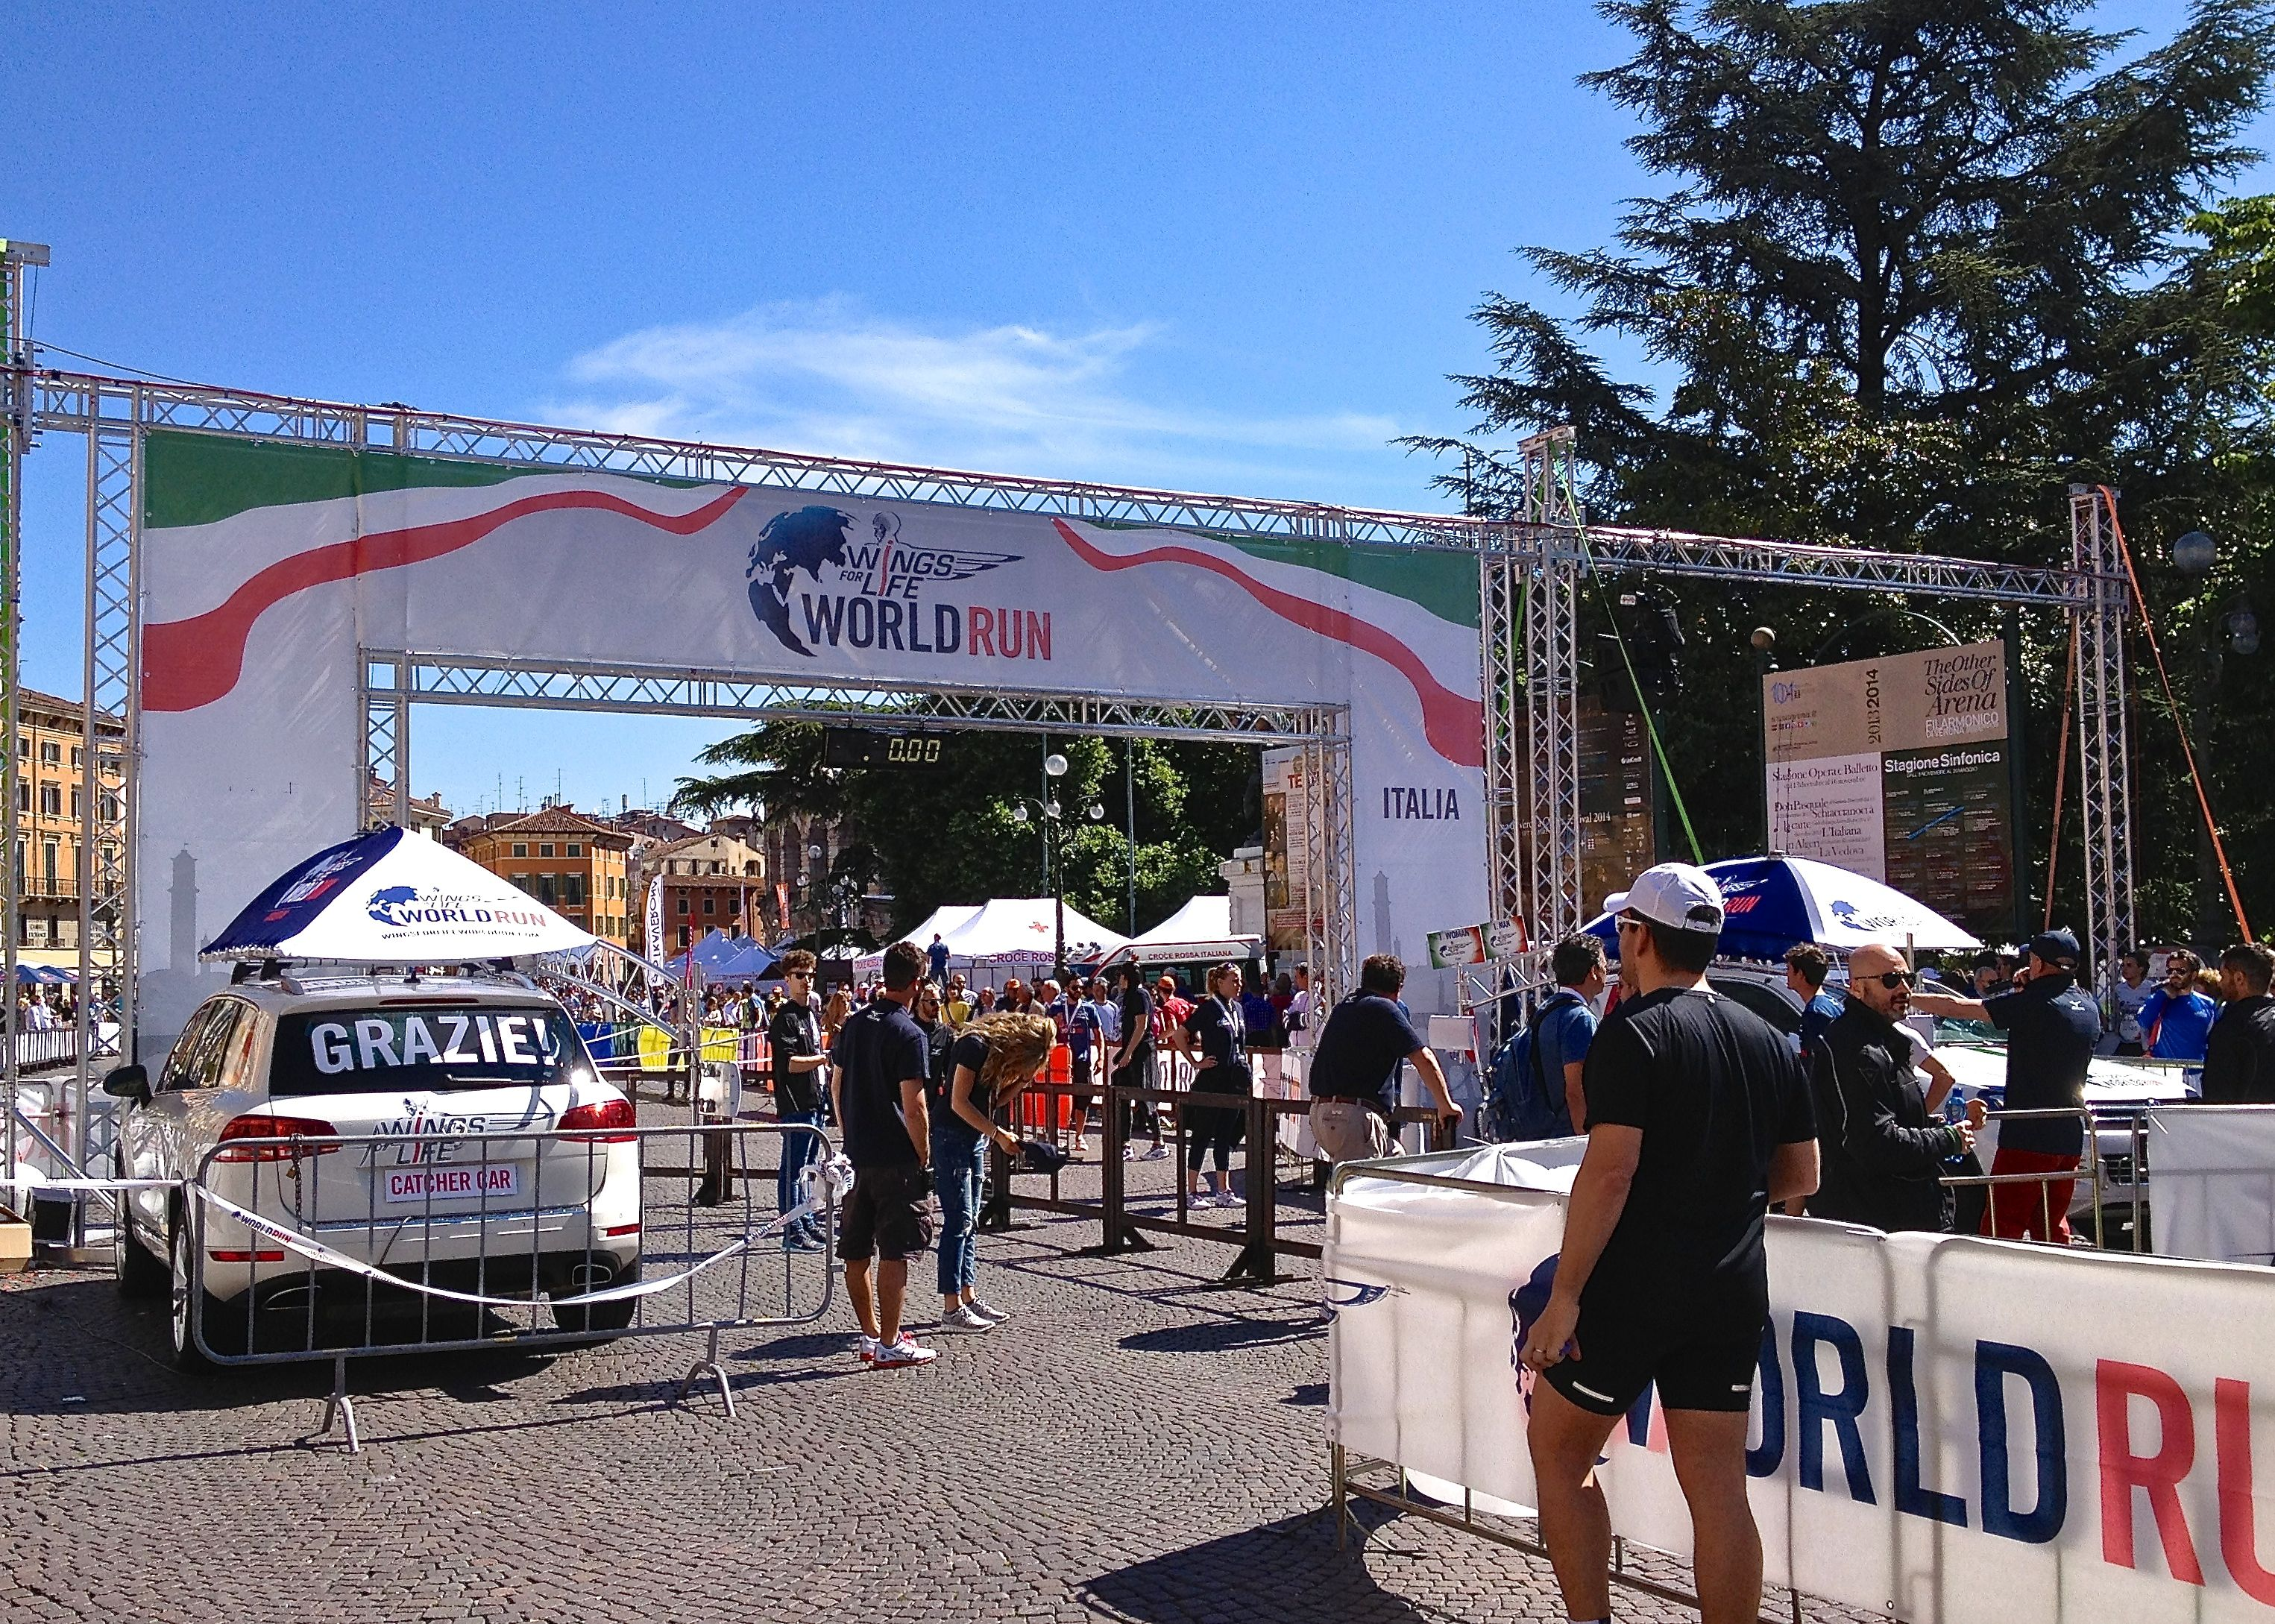 D_D_Italia - What's On In Italy in May - Wings for Life World Run